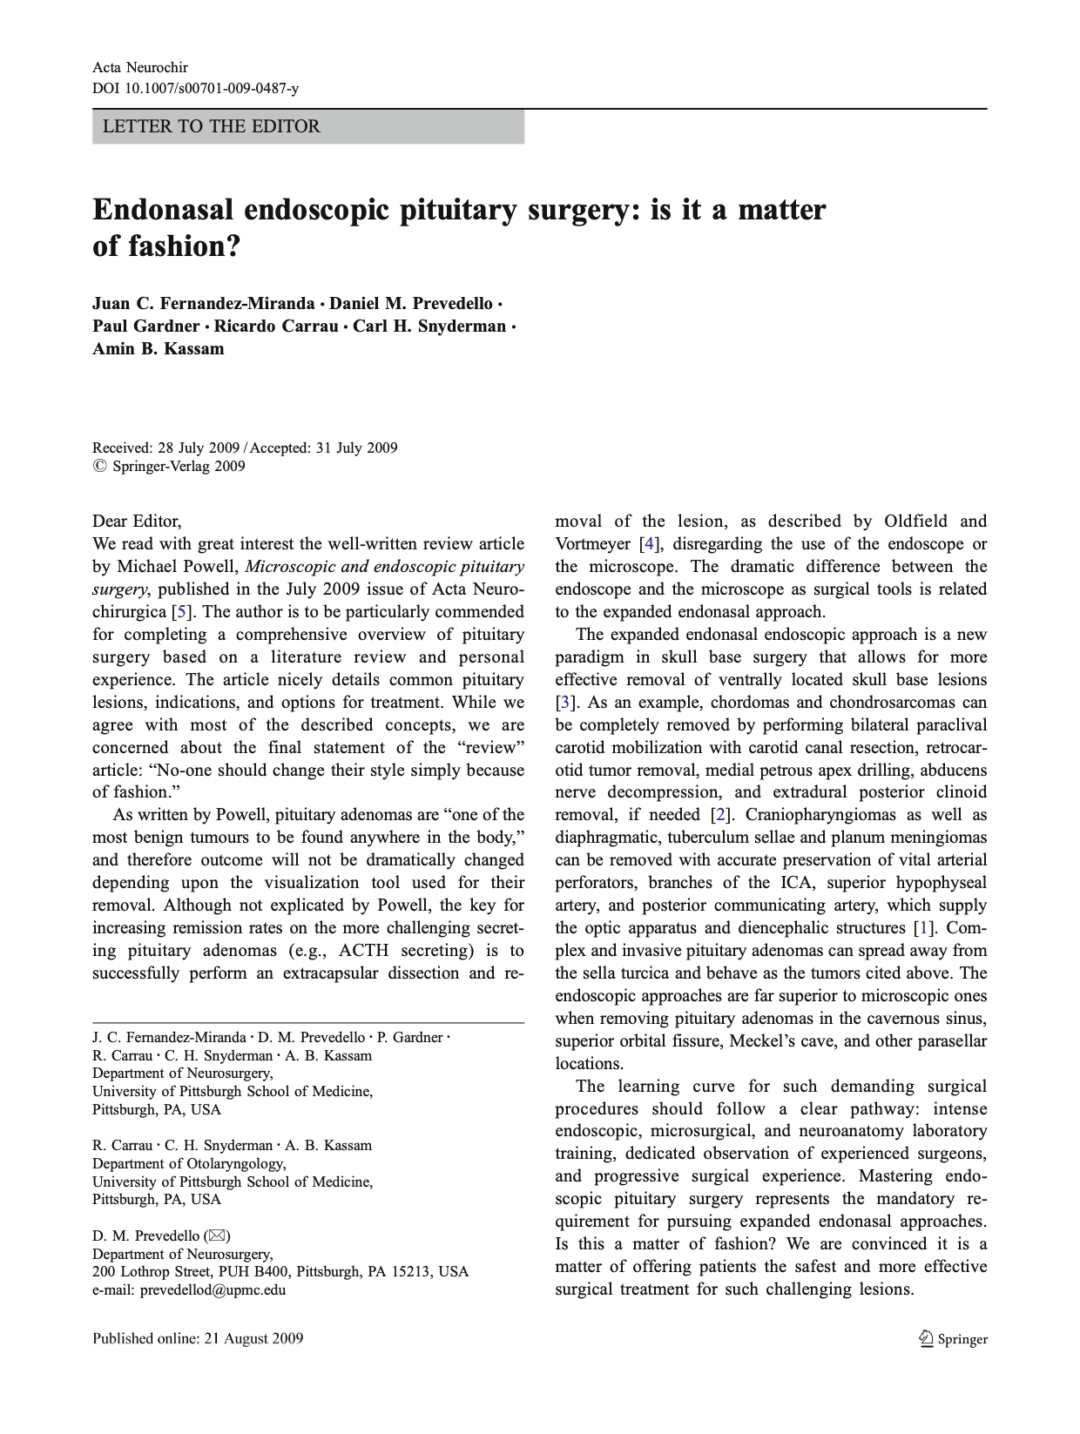 Endonasal endoscopic pituitary surgery: is it a matter of fashion?